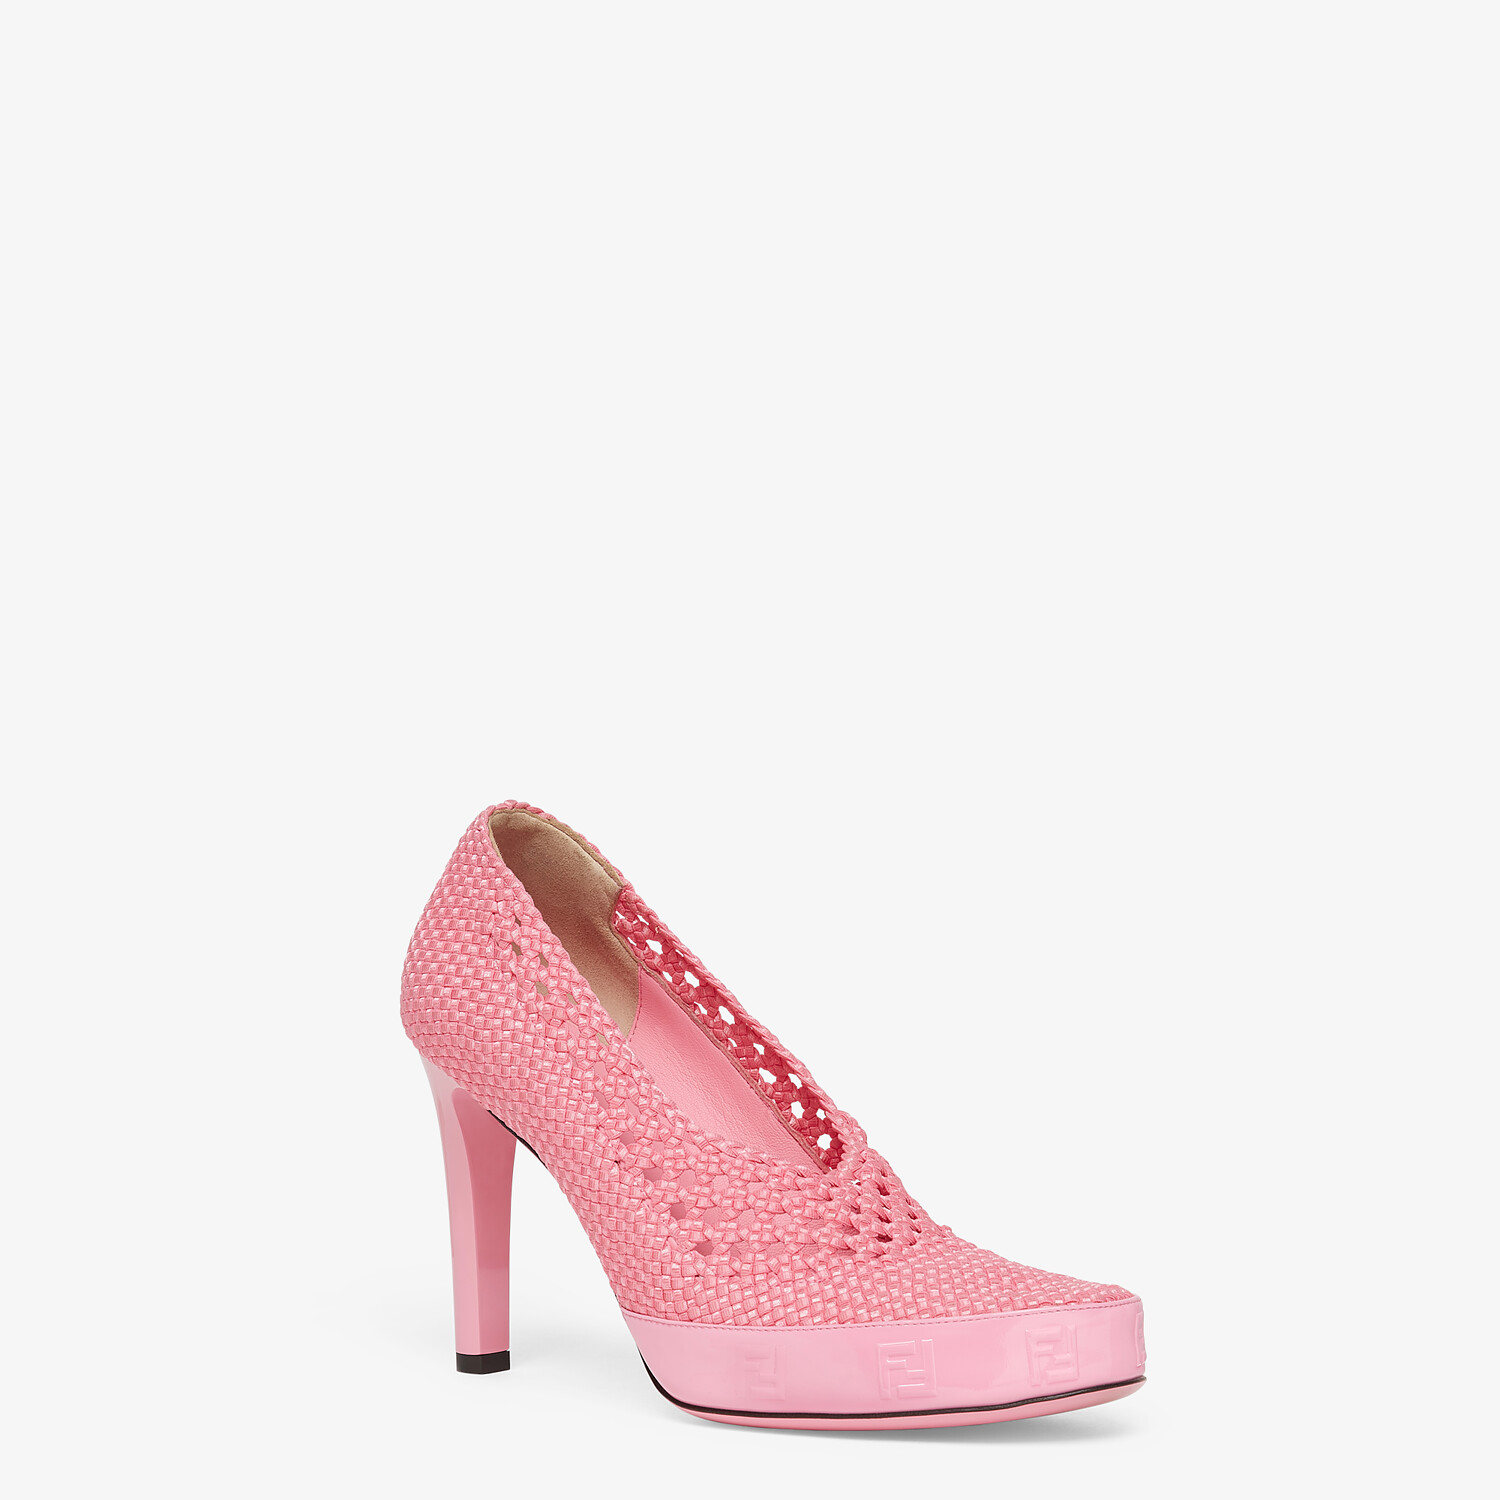 FENDI FENDI REFLECTIONS PUMPS - Elasticated pink lace pumps - view 2 detail